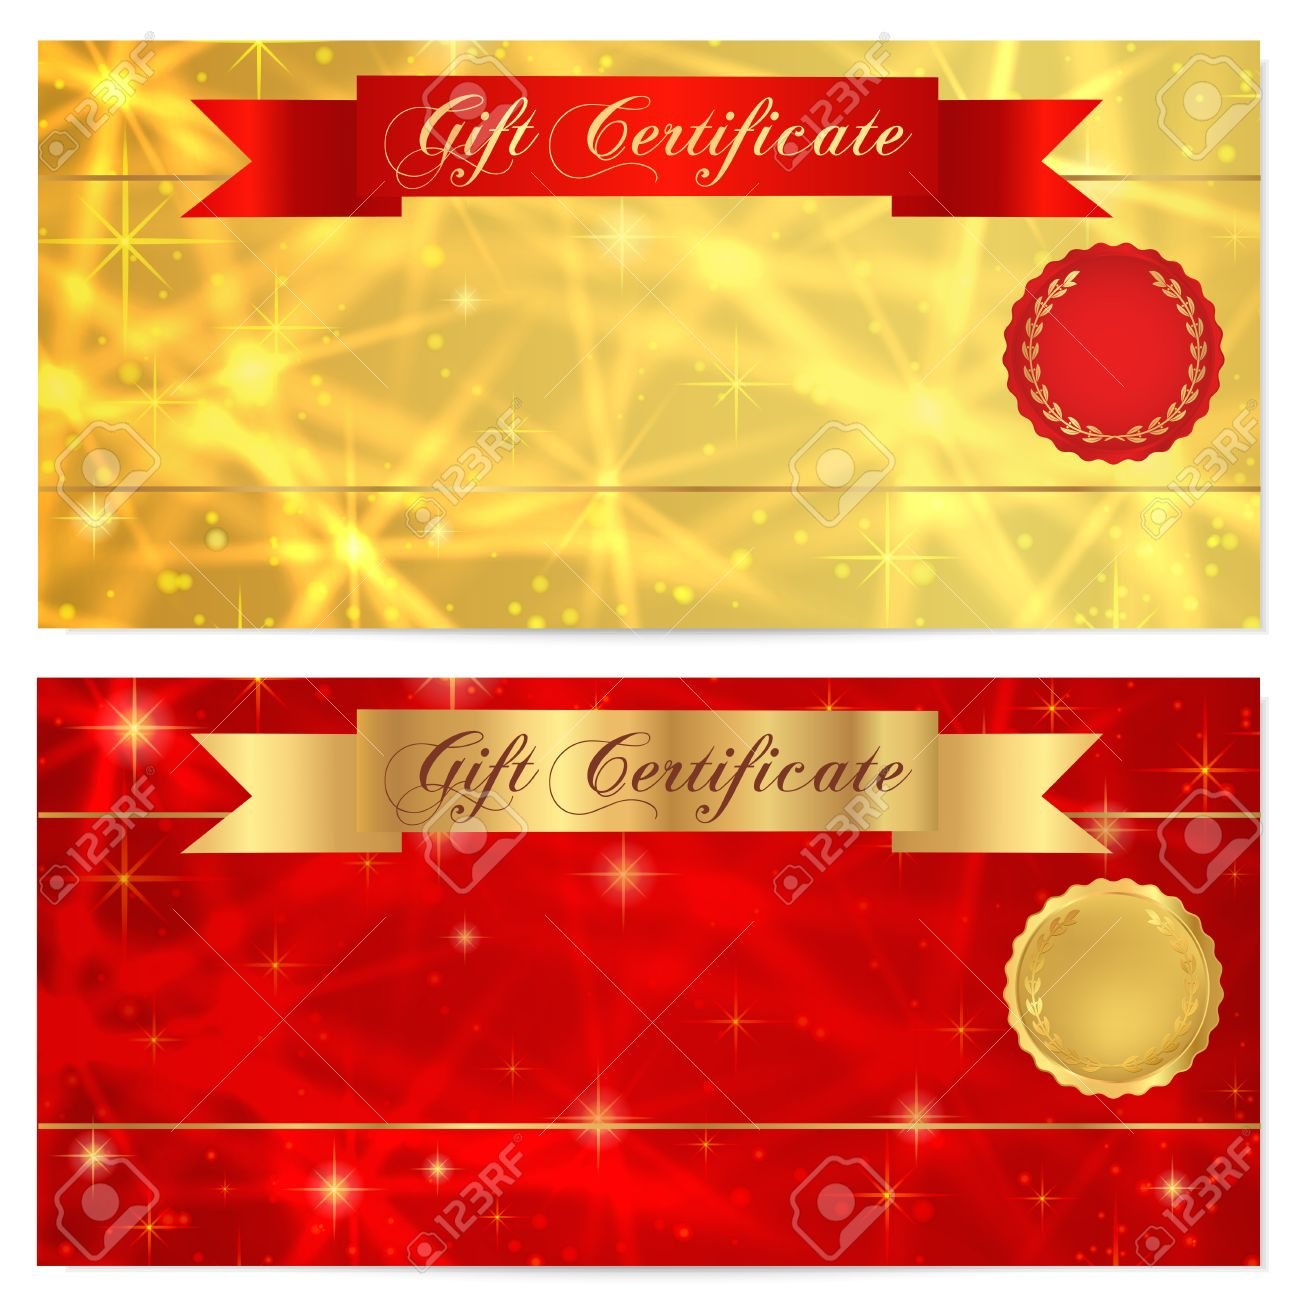 2 964 gift certificate christmas cliparts stock vector and gift certificate christmas gift certificate voucher coupon reward or gift card template